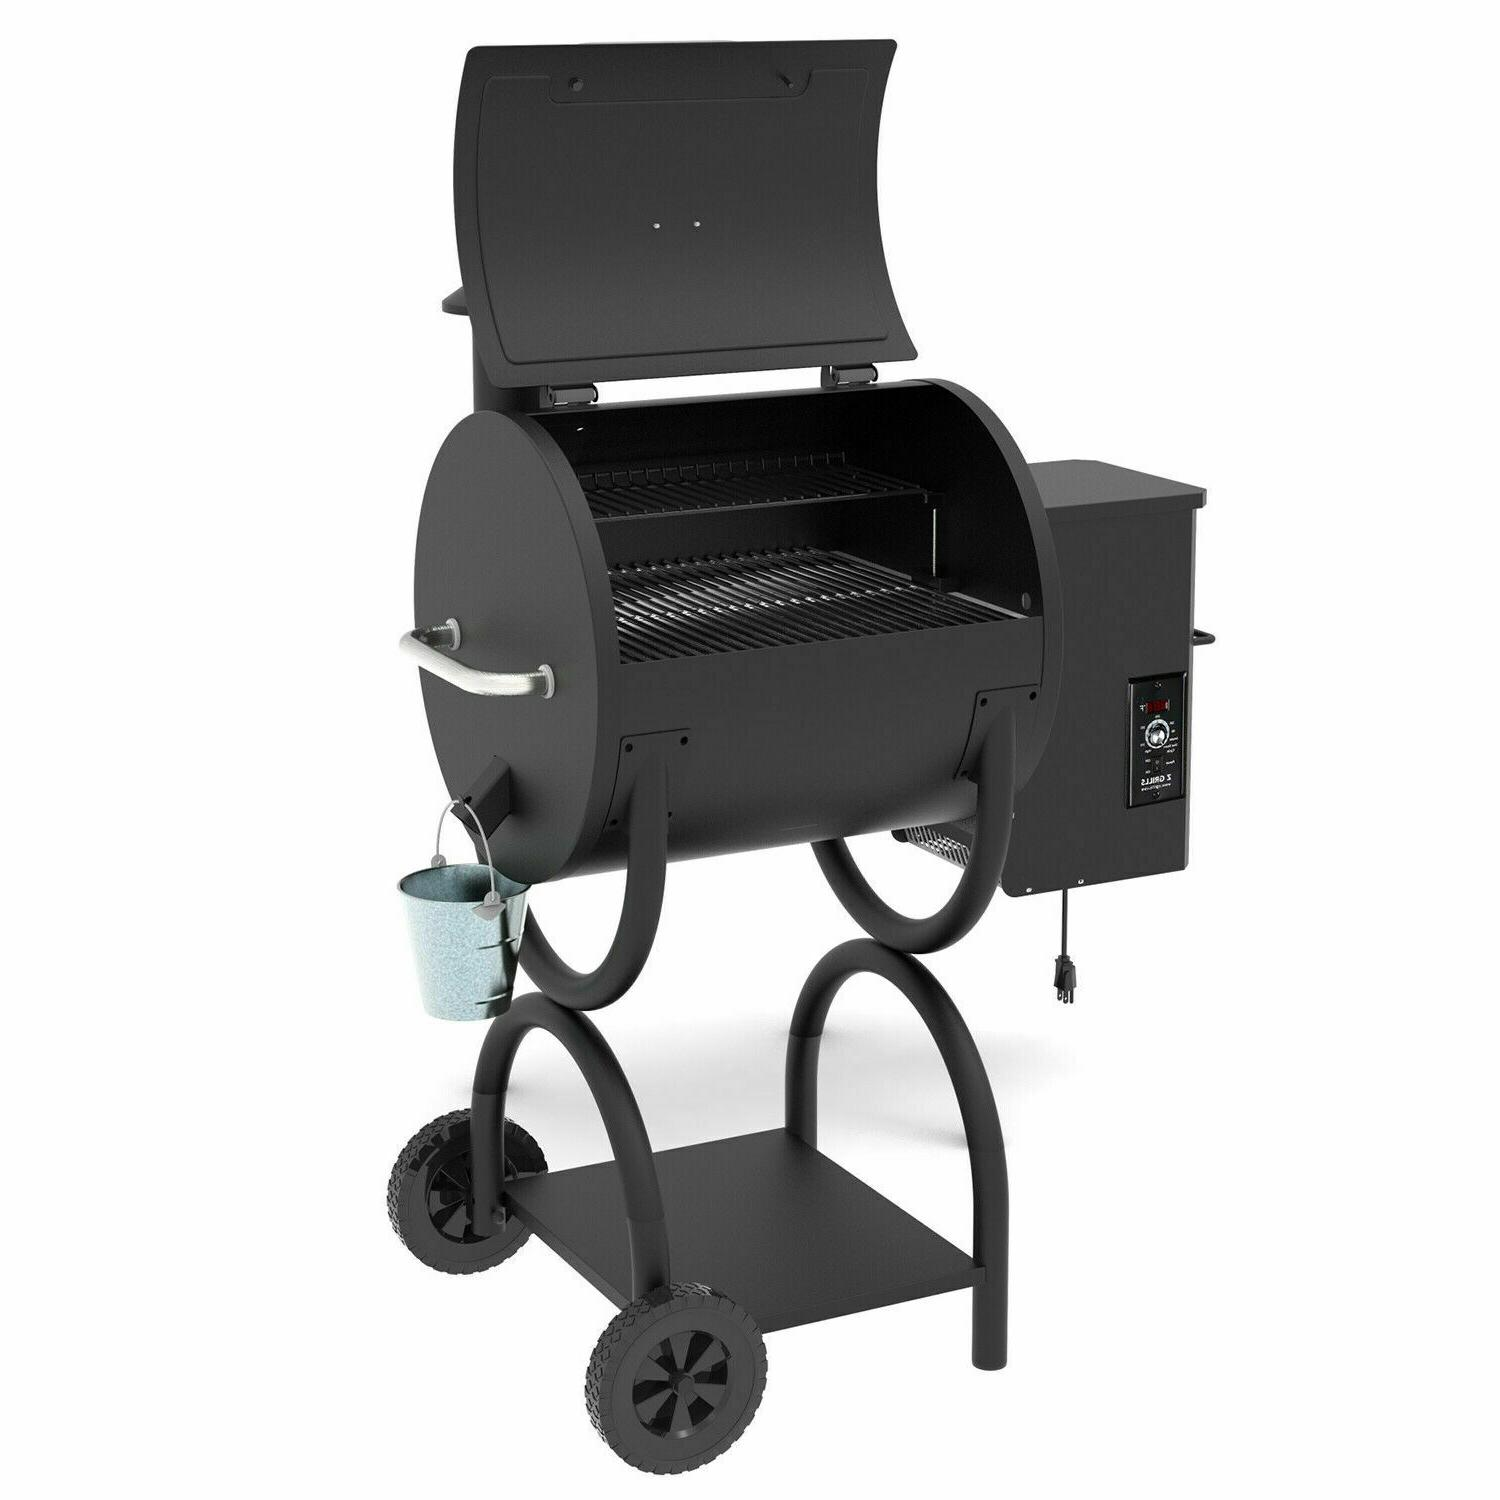 Z GRILLS New Wood Grill& Smoker Control